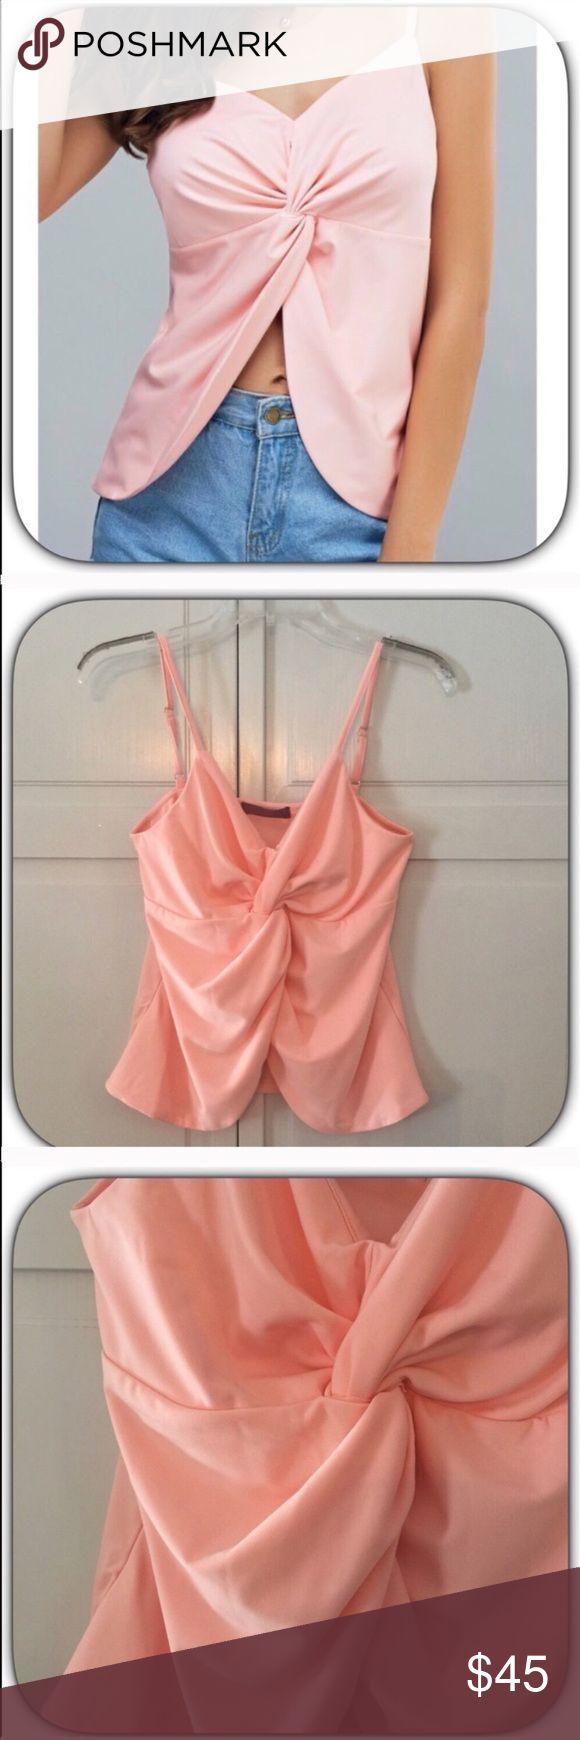 JUST IN! NWT Alluring Pretty Pink Cami Top Wow! This is a sweet top! The color is a soft pink! It has adjustable straps and it is lightly padded for some support! It is very soft and so comfortable! Bust 26 Length 23 Boutique Tops Tank Tops